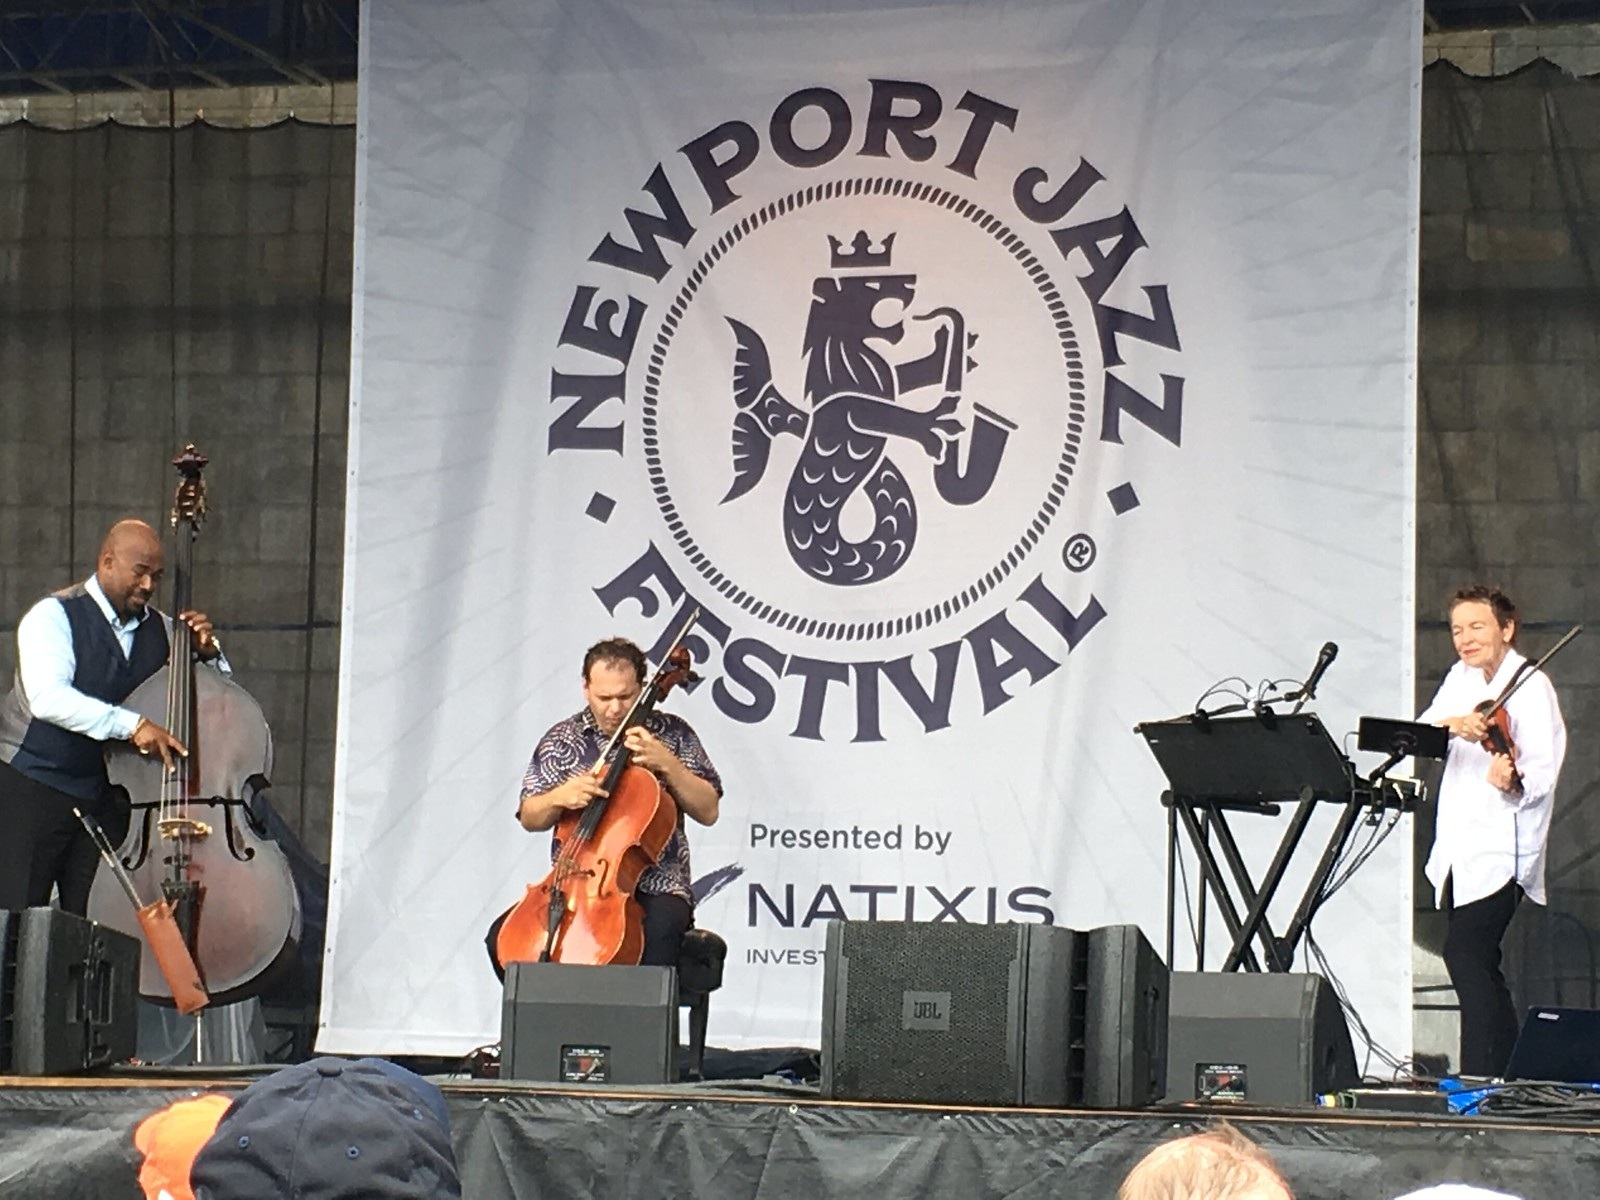 Rubin performs at Newport Jazz Festival 2018 with Laurie Anderson and Christian McBride.